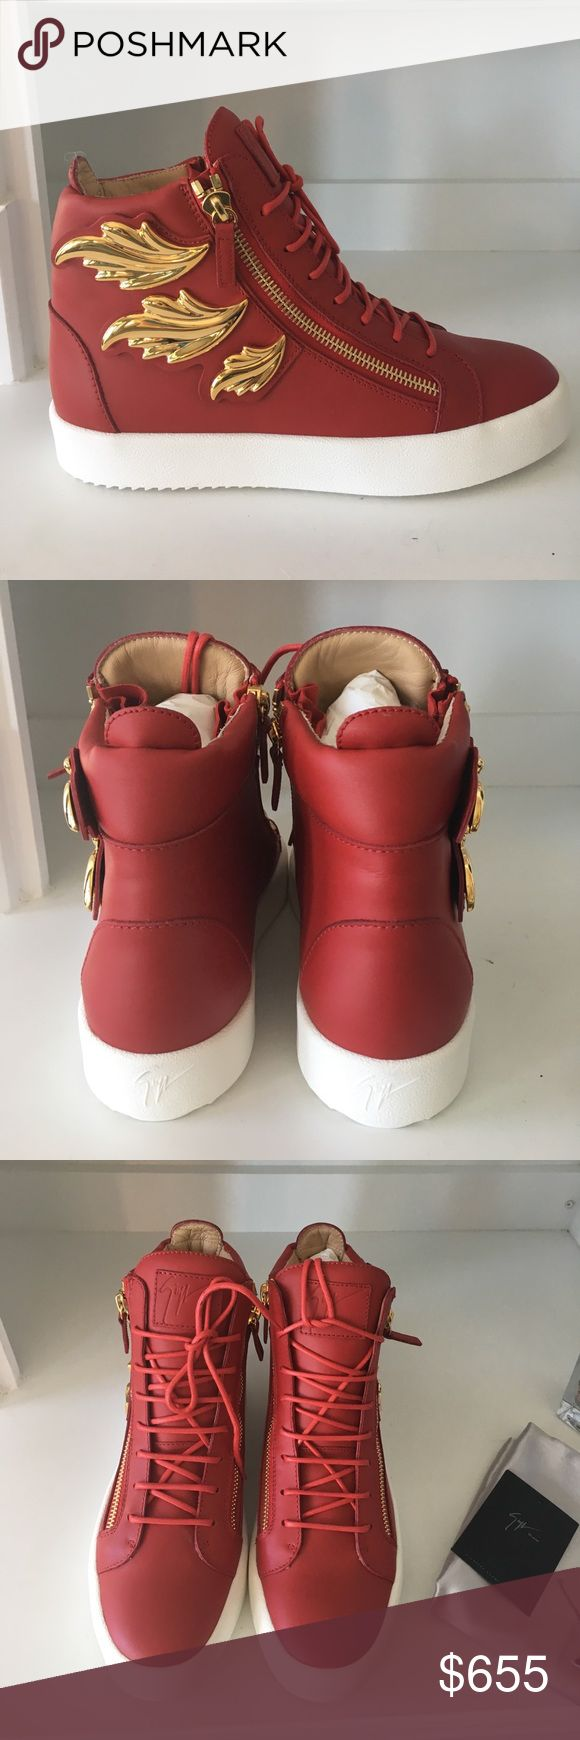 Giuseppe Zanotti sneakers Authentic and new. Original box and dust bag included. 44EU Giuseppe Zanotti Shoes Sneakers